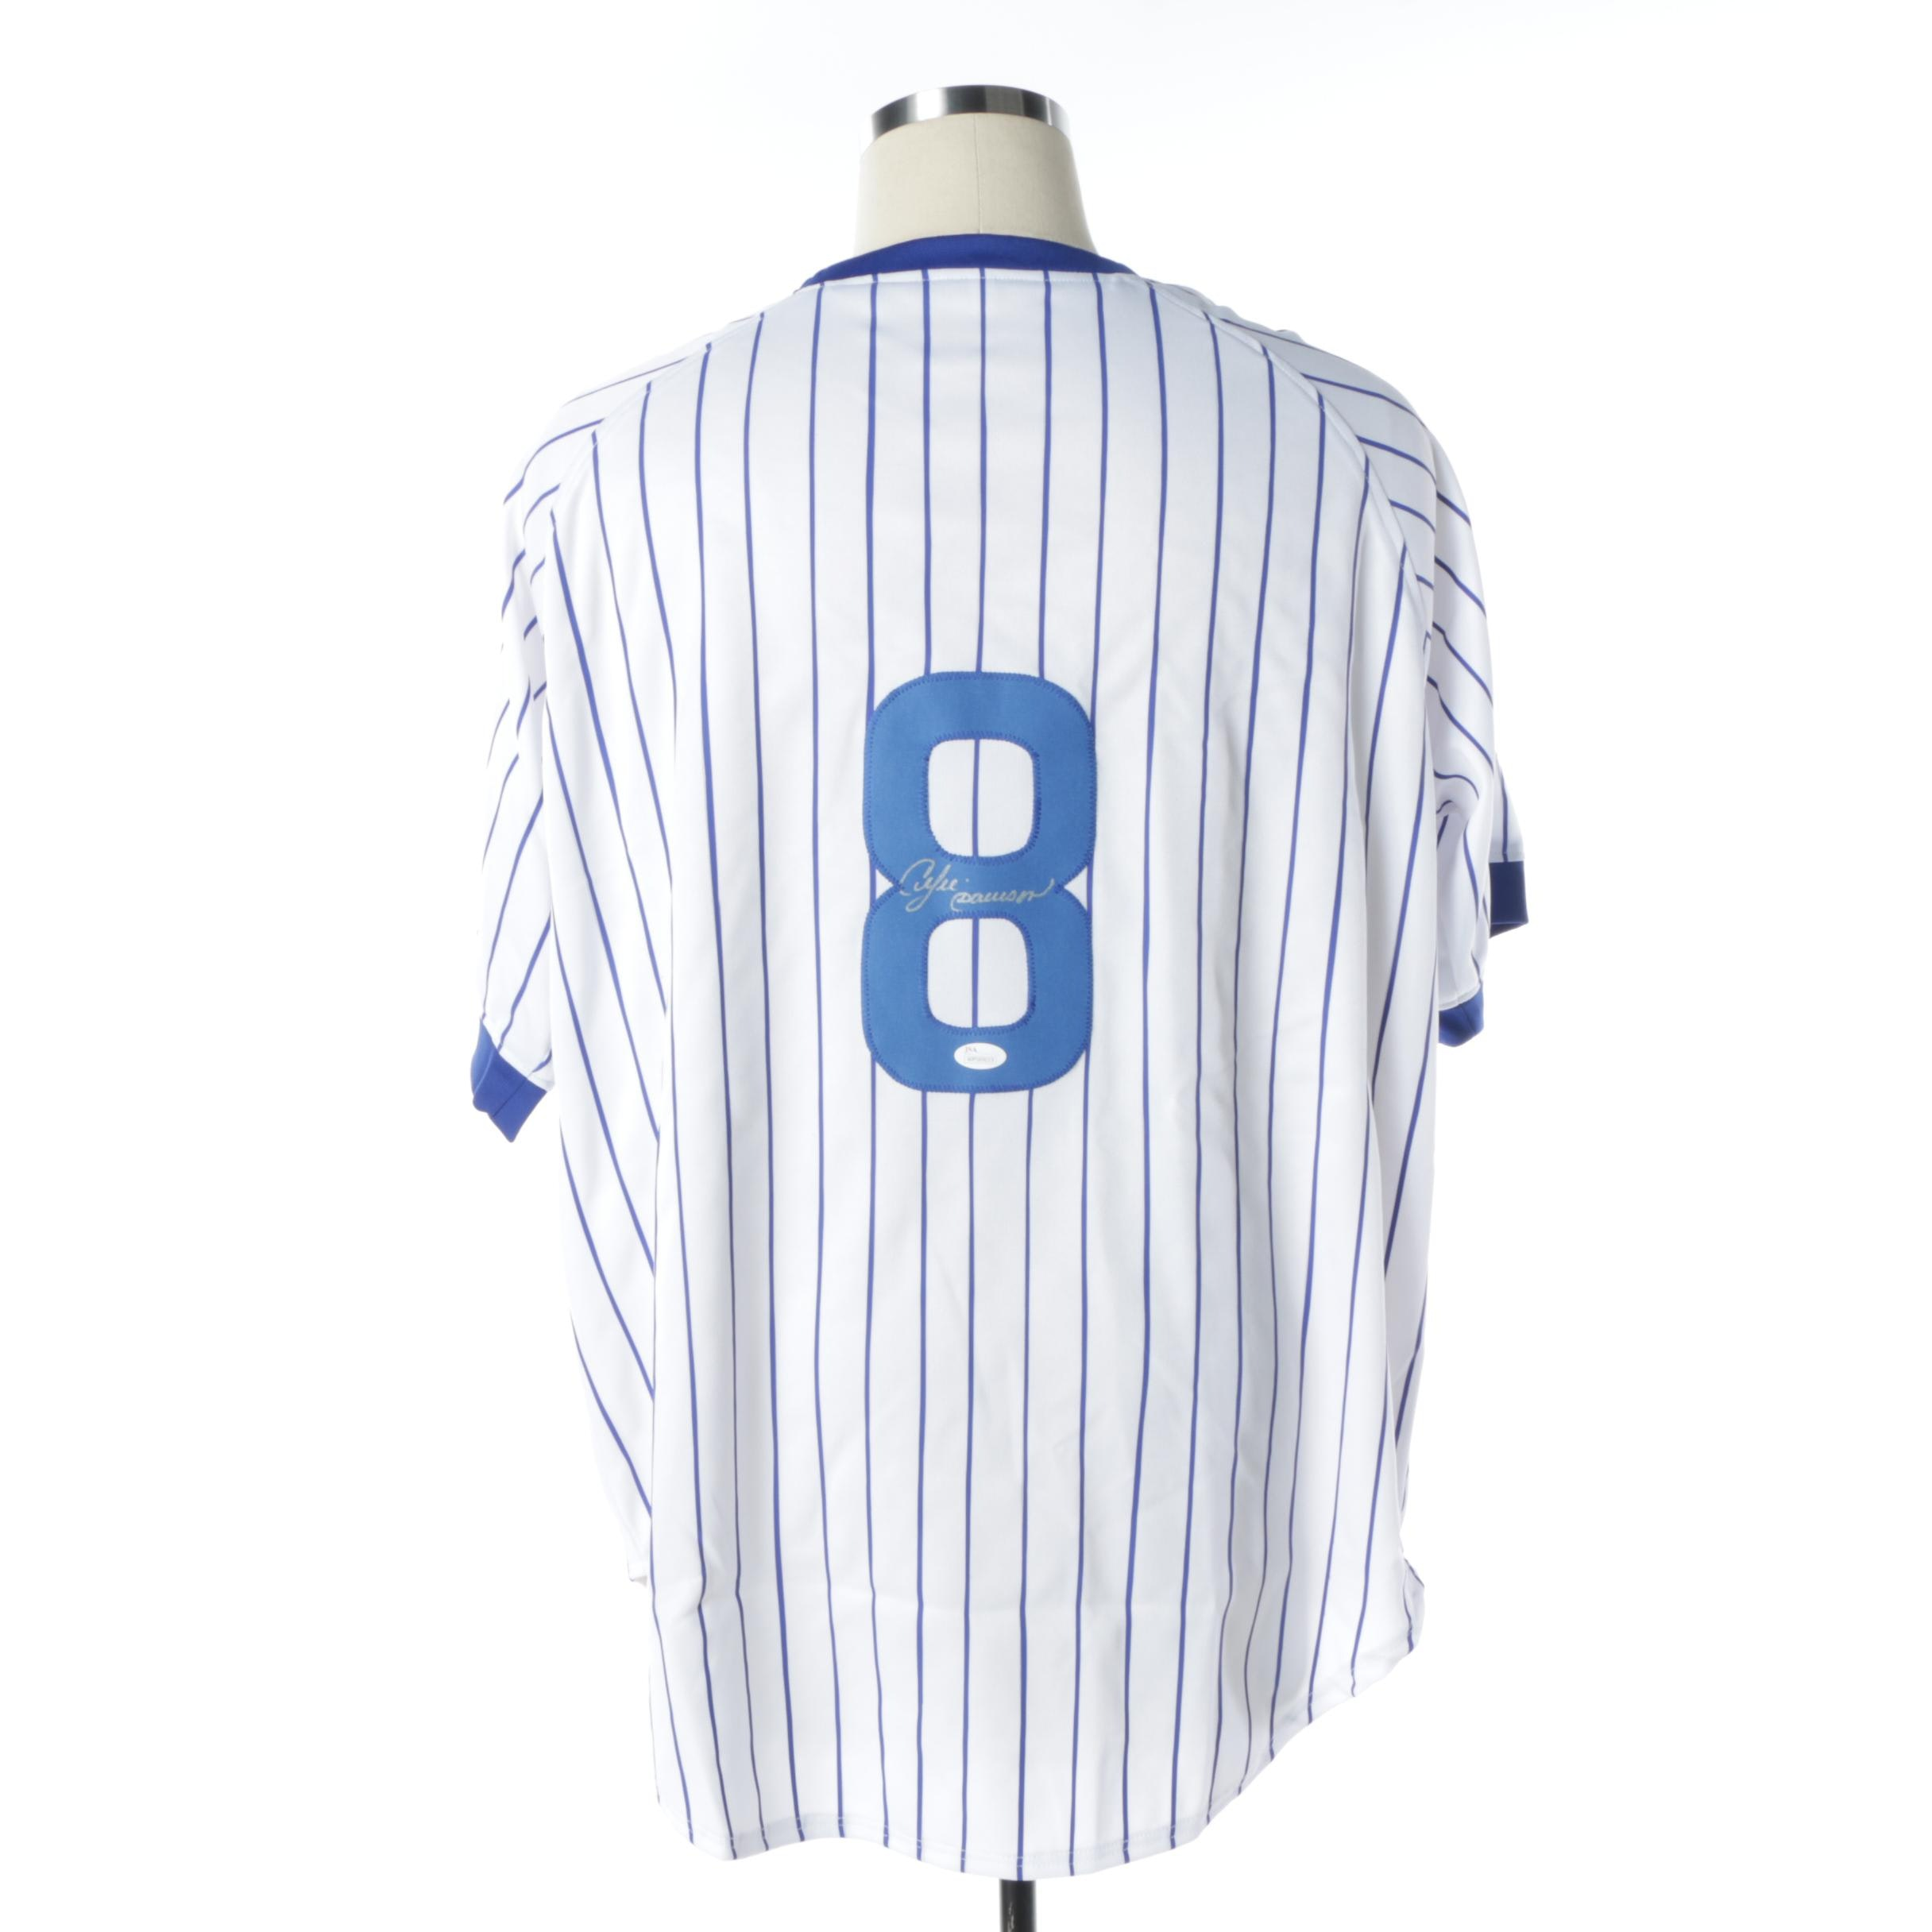 Andre Dawson Autographed Chicago Cubs Jersey - JSA COA